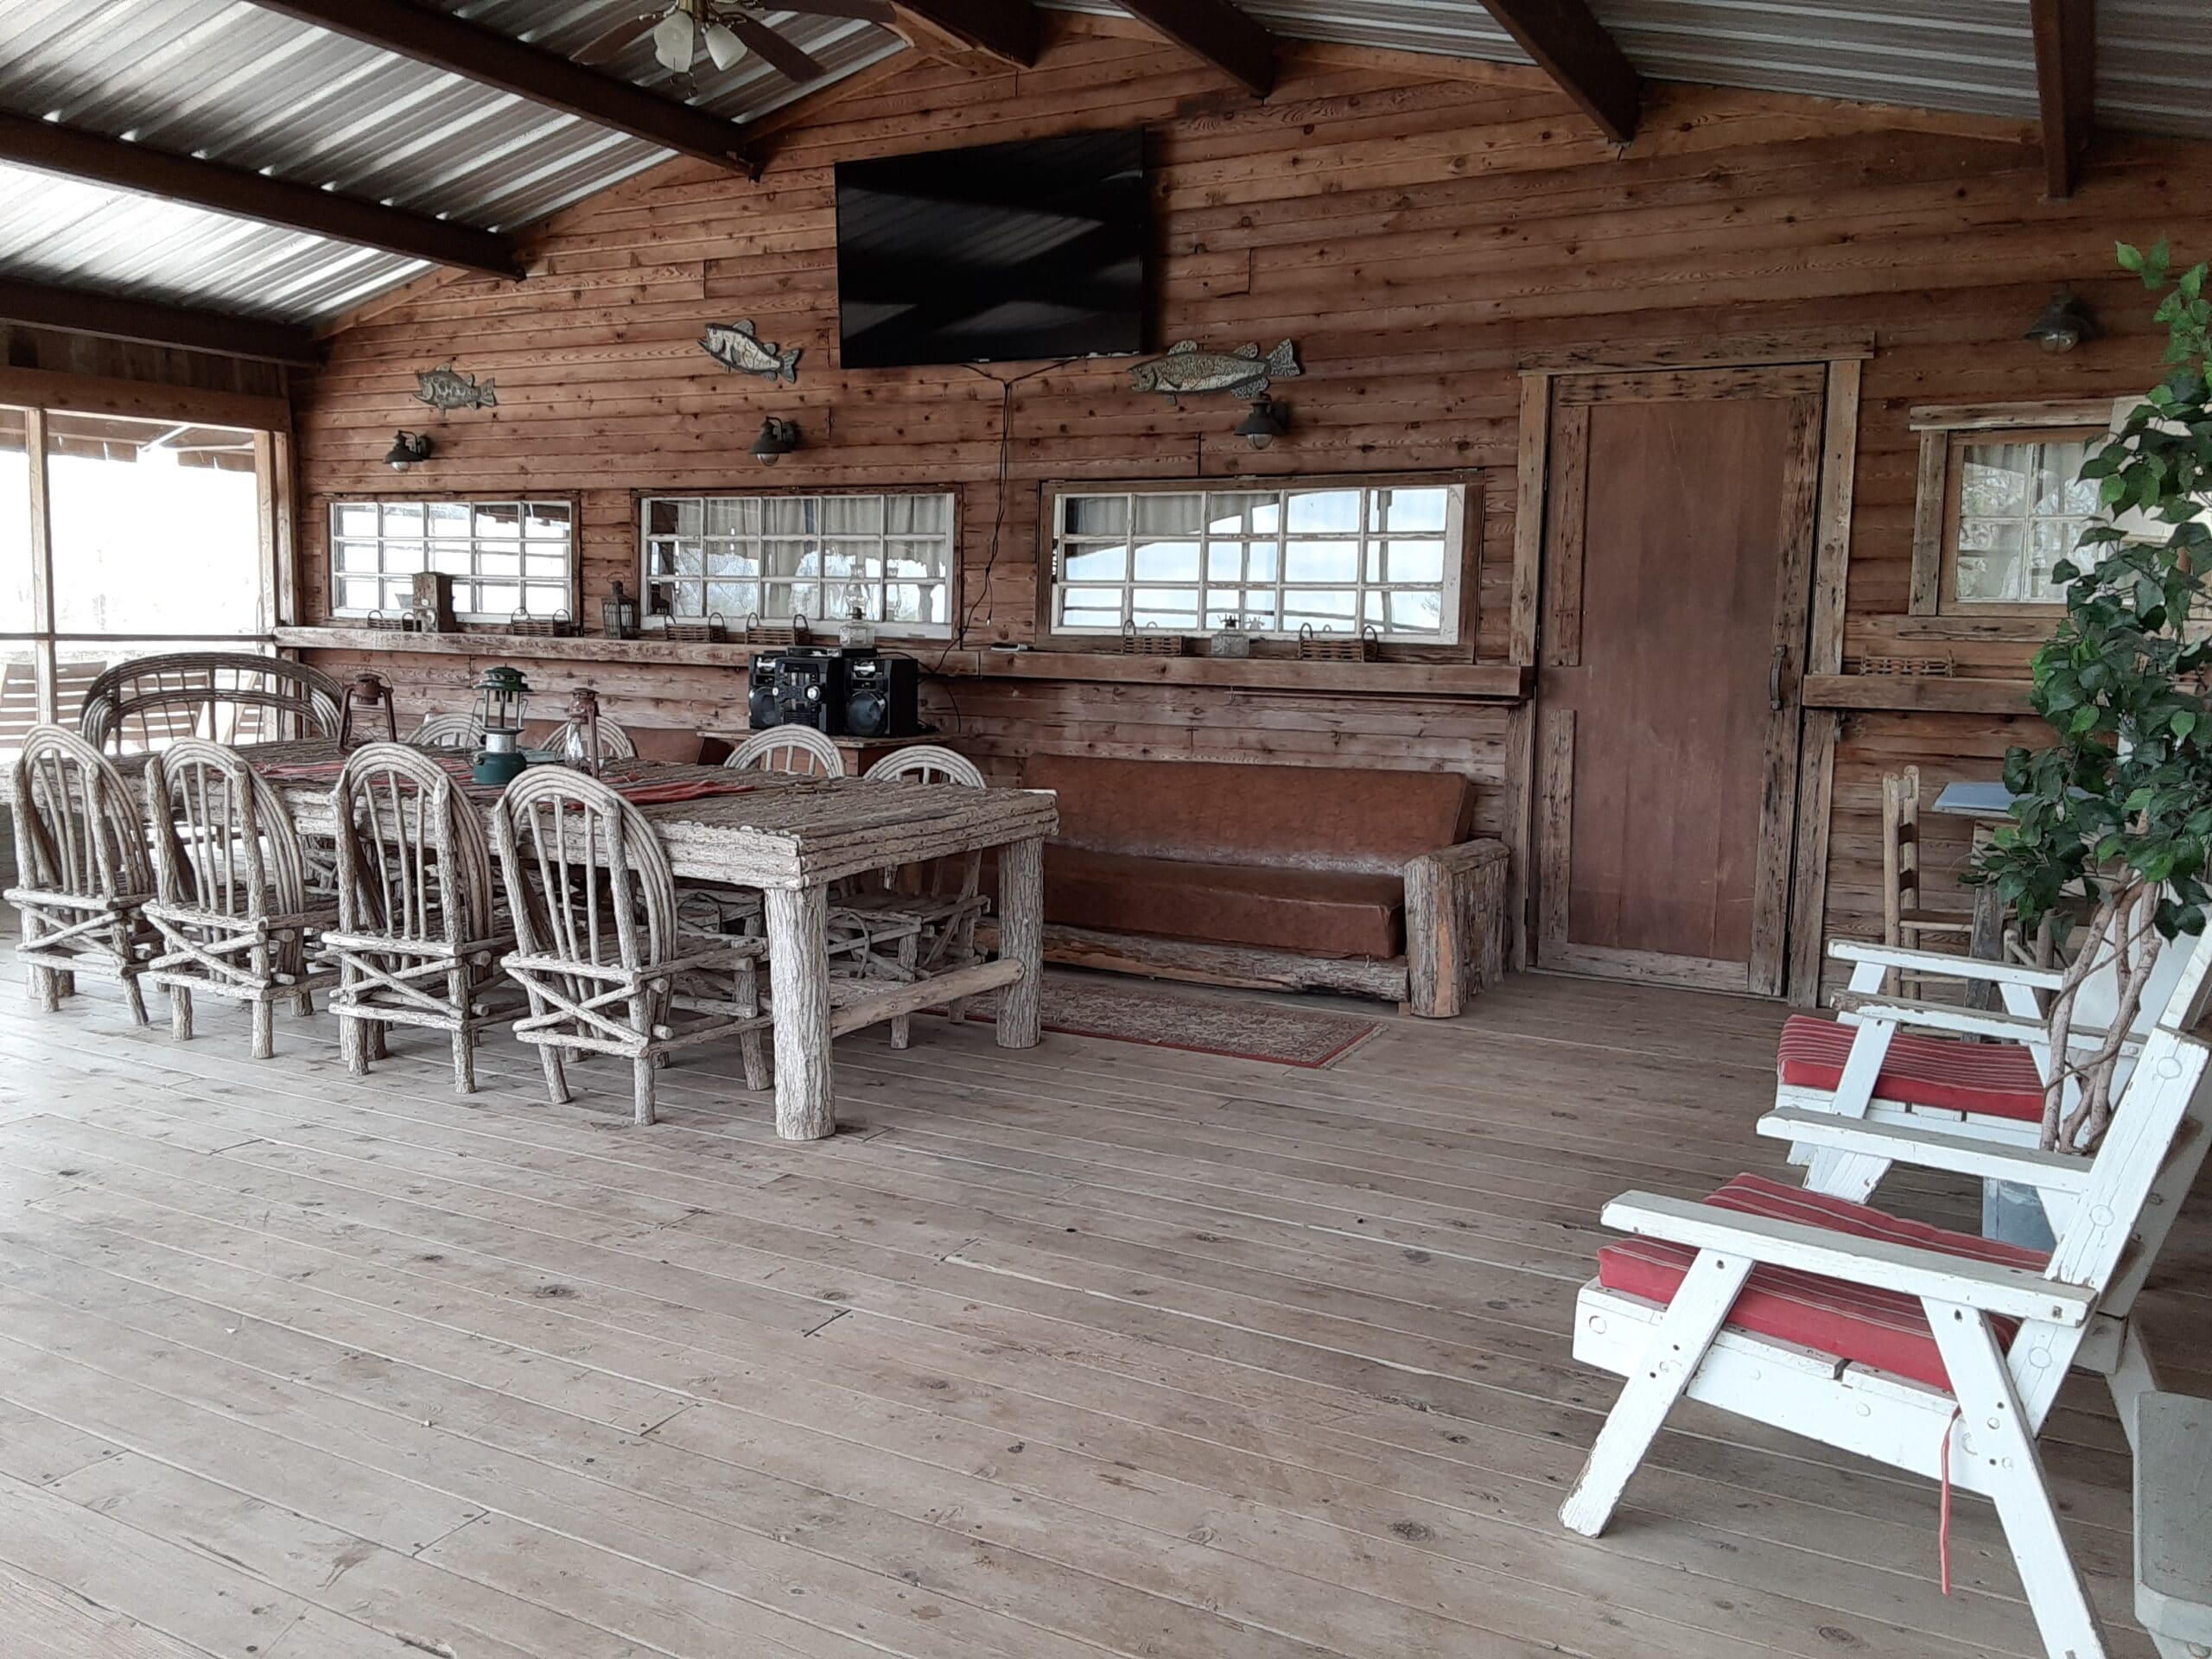 interior of boat house with screen walls and tables and chairs